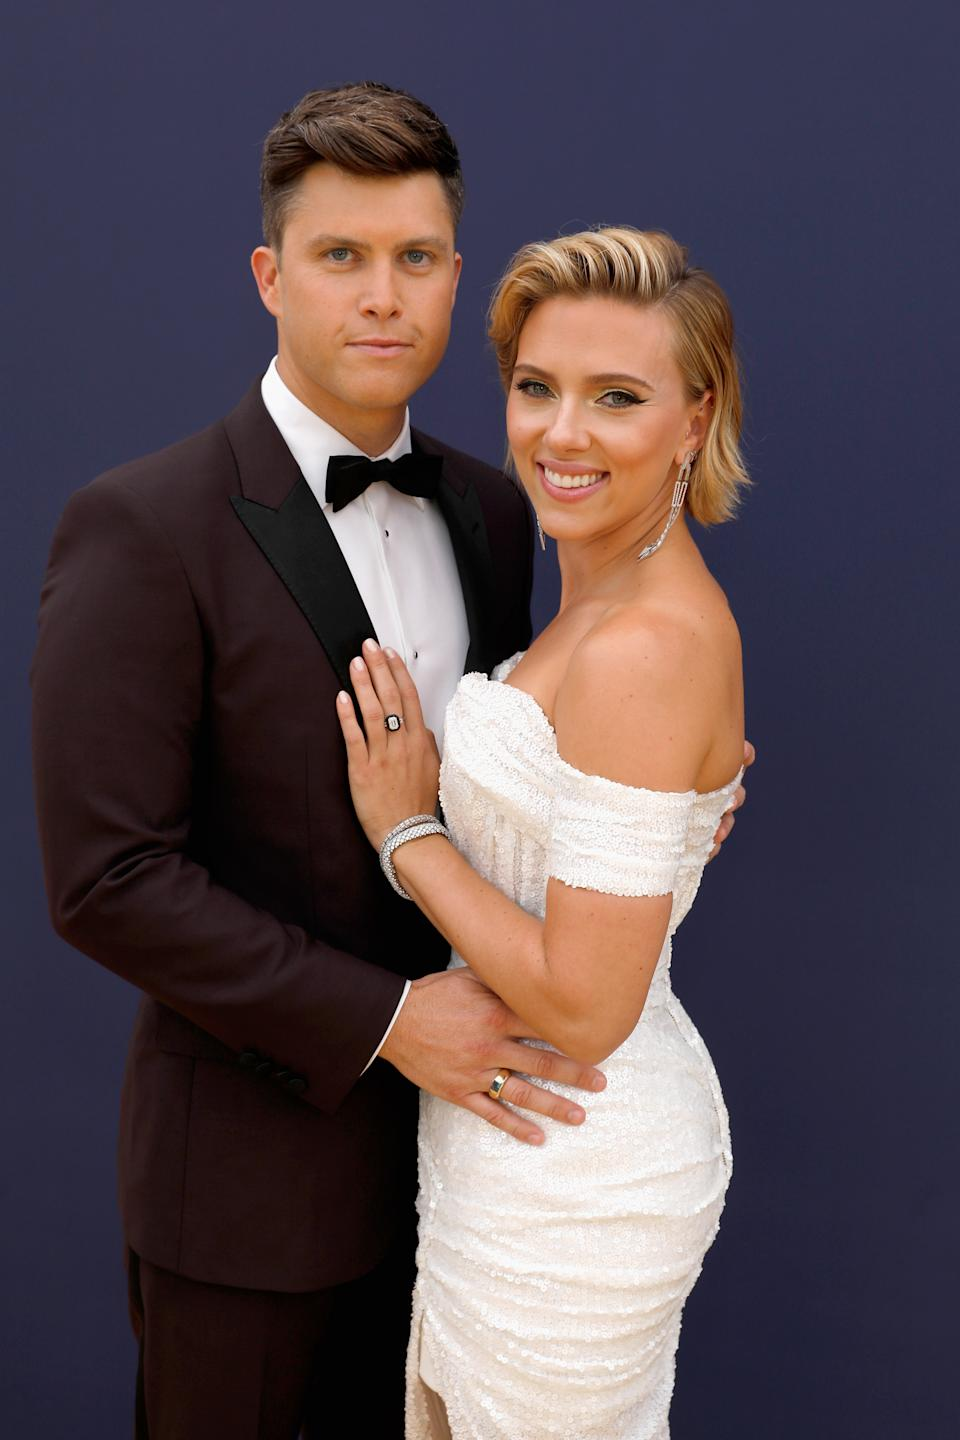 Scarlett Johansson and Colin Jost arrive to the 70th Annual Primetime Emmy Awards held at the Microsoft Theater on September 17, 2018.  NUP_184217